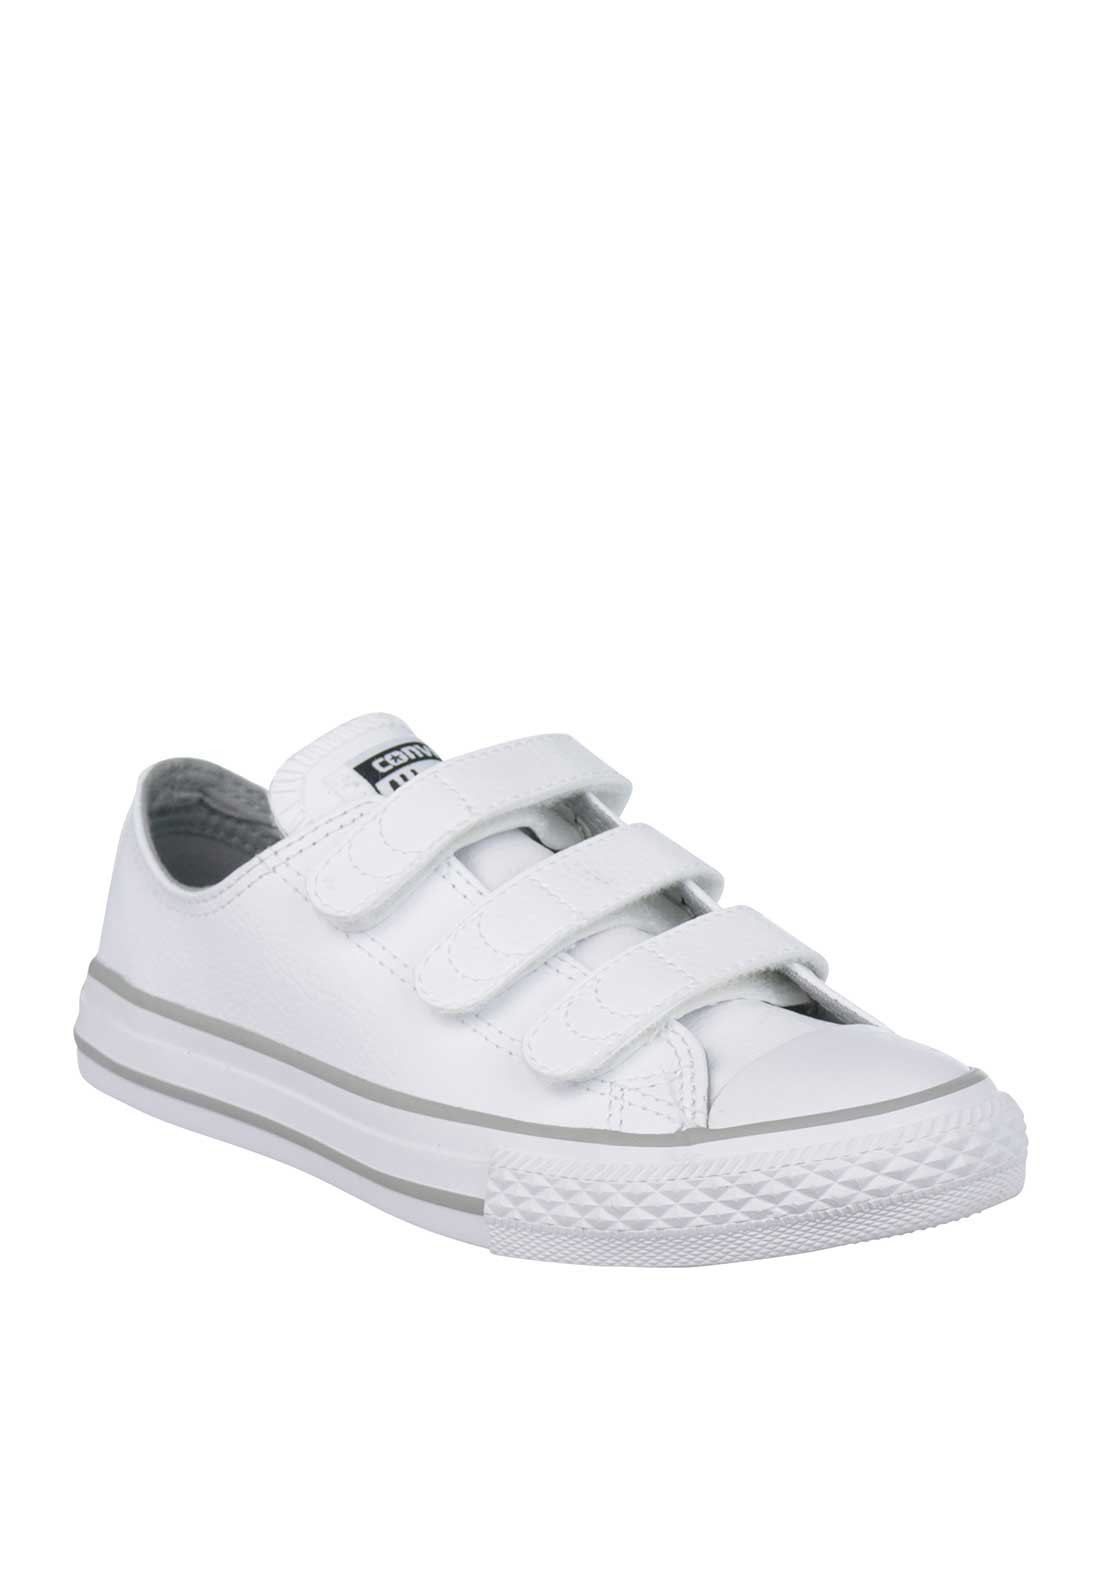 Converse Kids All Star Leather Trainers, White